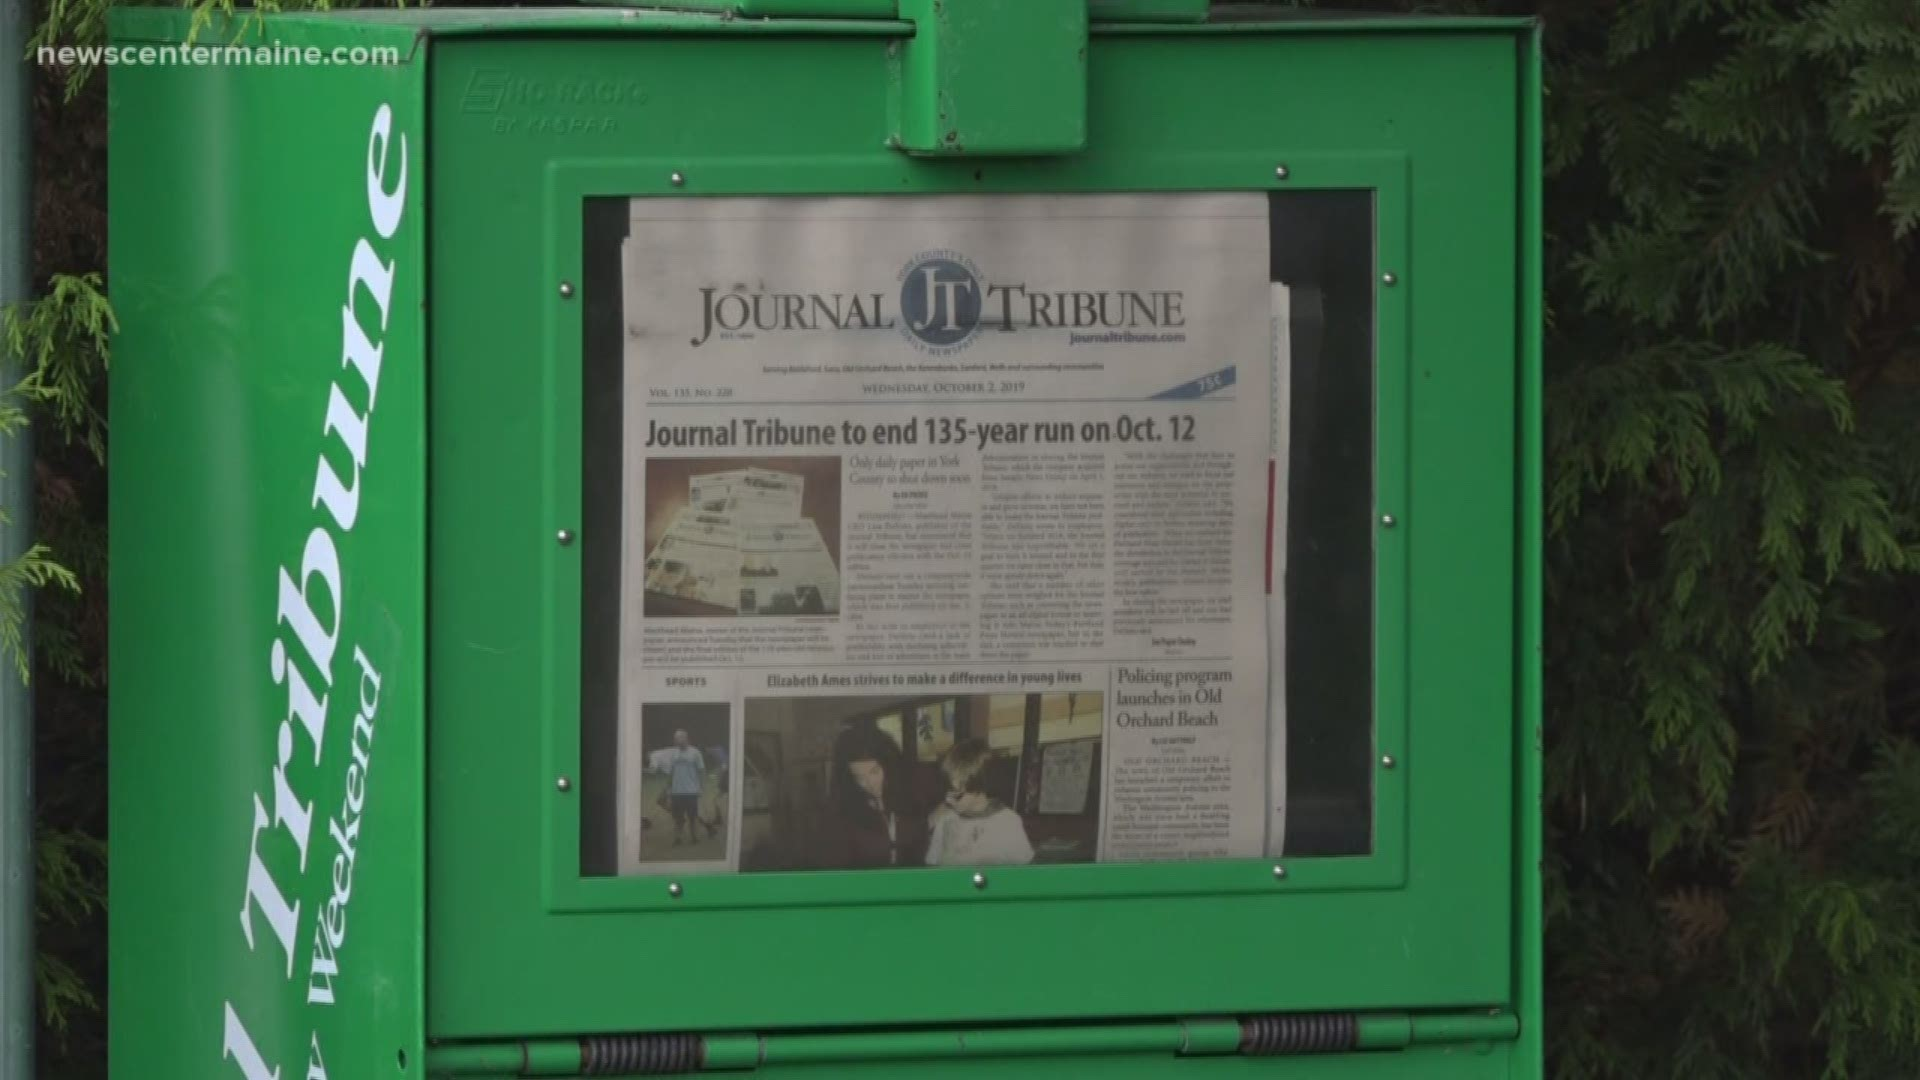 Journal Tribune Newspaper Folds After 135 Years Newscentermaine Com